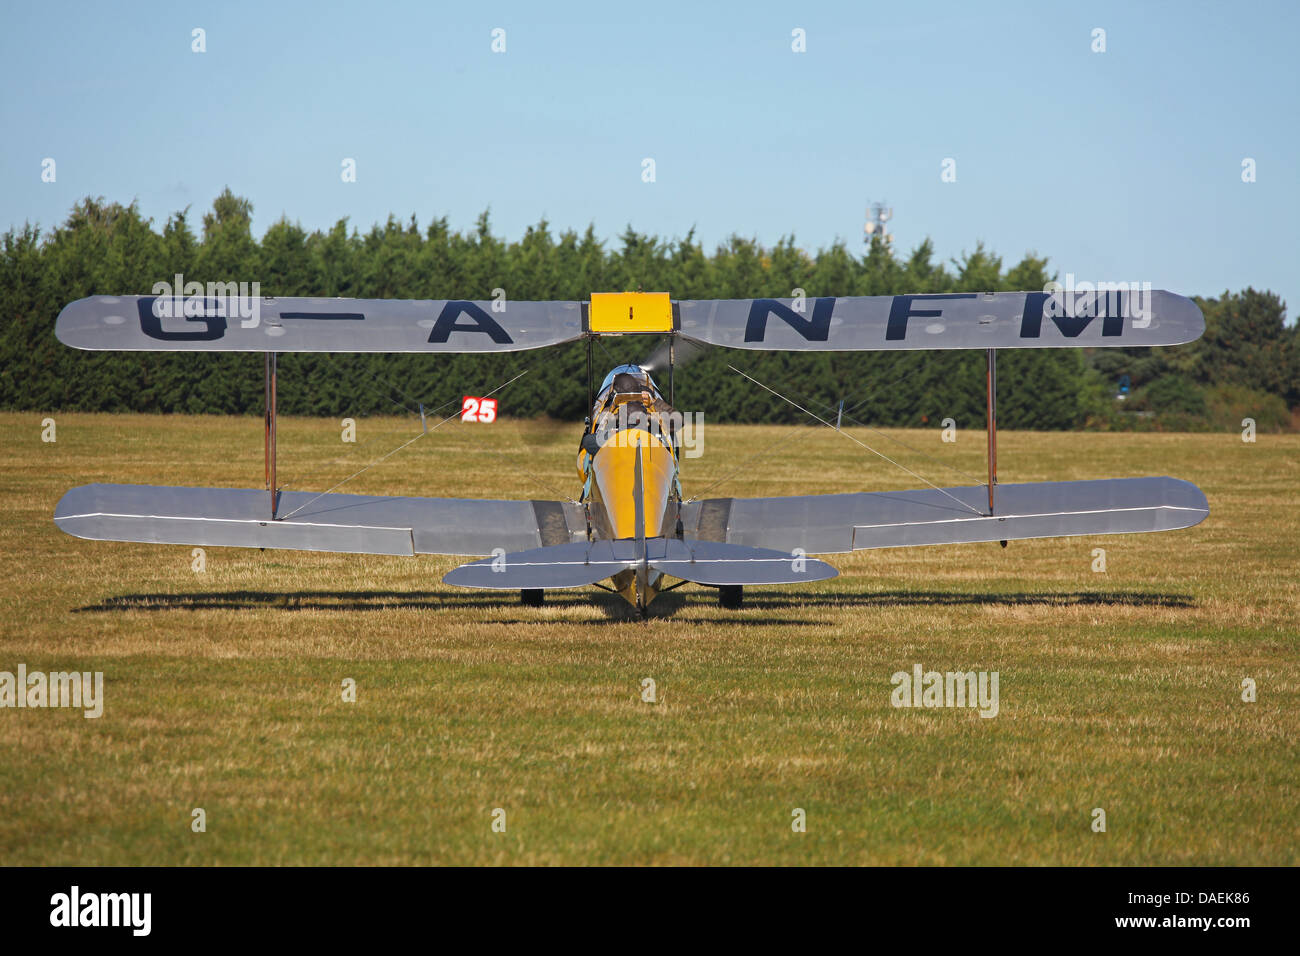 A biplane readying for taxiing to the runway on a fine day. - Stock Image